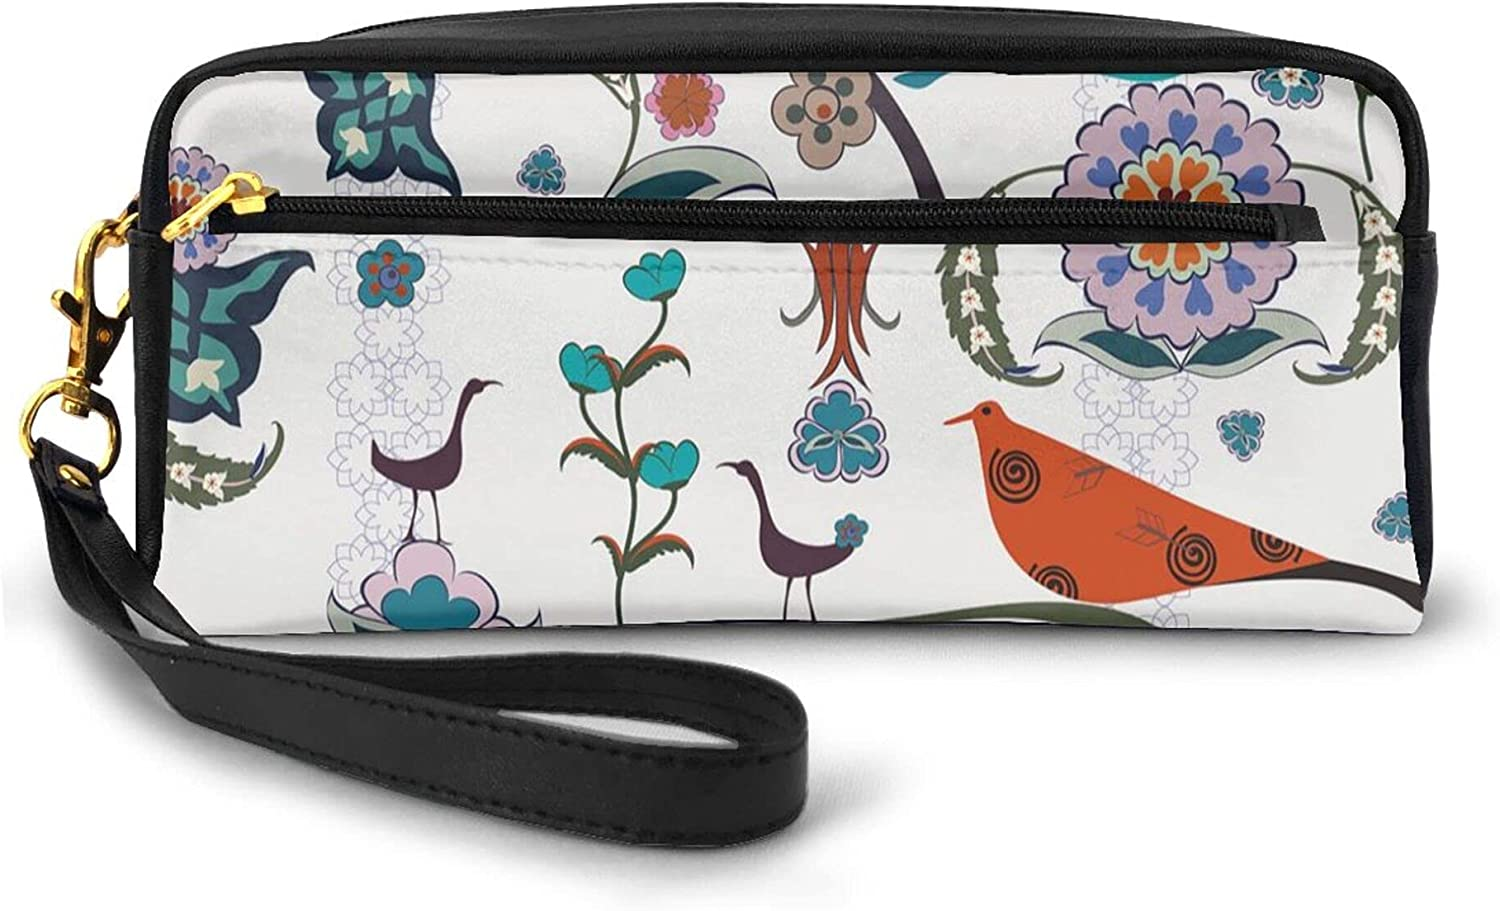 Pencil Case Large Capacity Pen Pouch Stationery Foldable,Floral Flowers Swirls Ivy Buds Birds Leaves Ethnic Bohem Inspired Artistic Image,Boy Girl College High School with Zipper